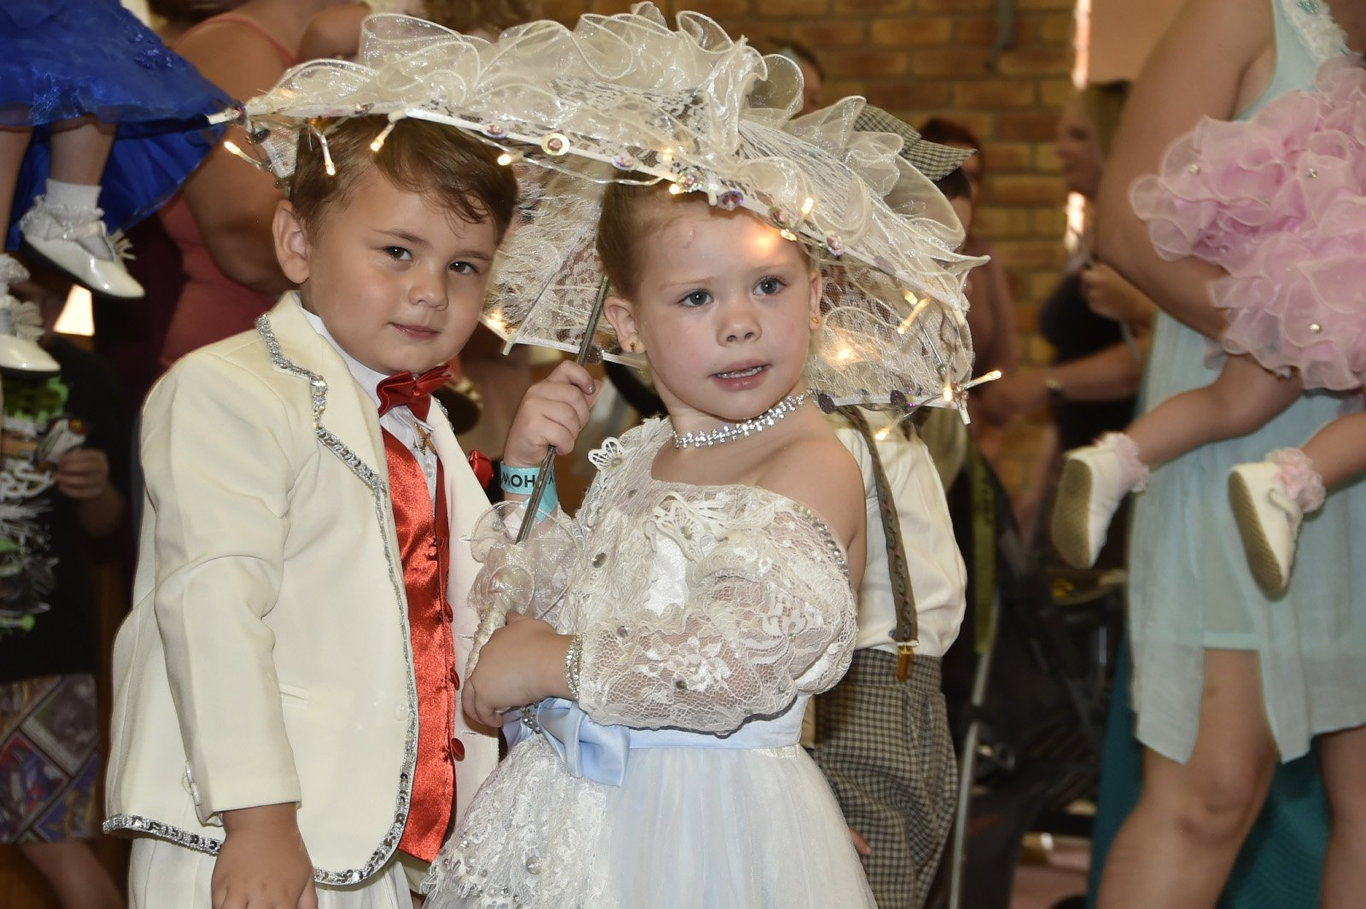 STUNNING OUTFITS: Winners of the previous Baby Show Time Baby show Hastin Mulford-Jackson (left) with Brianne Barry-Hughan.